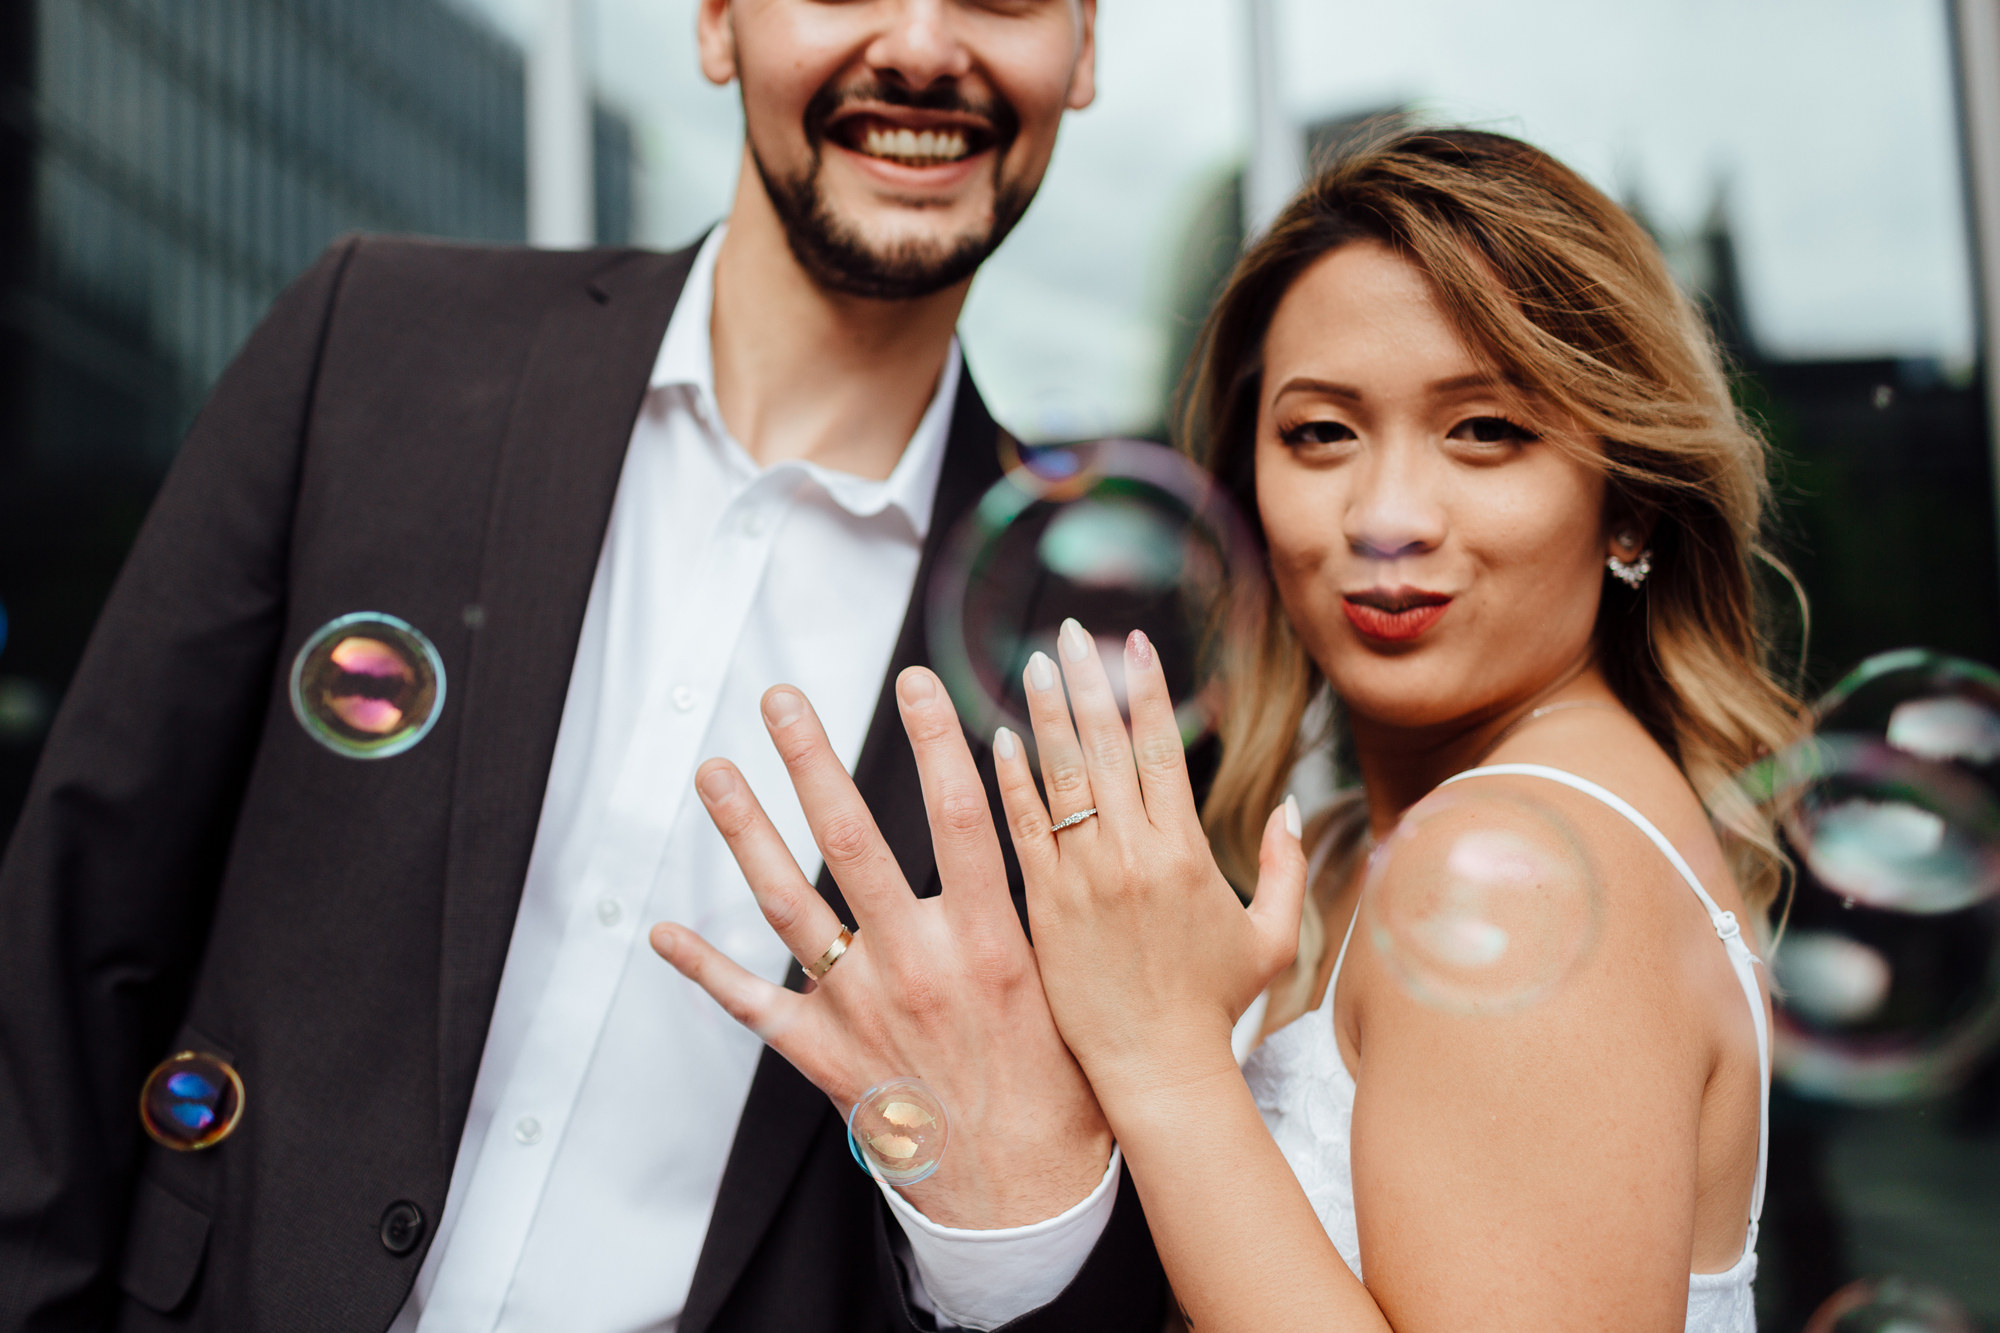 Seattle Rooftop Courthouse Wedding Photos by Krista Welch00013.jpg